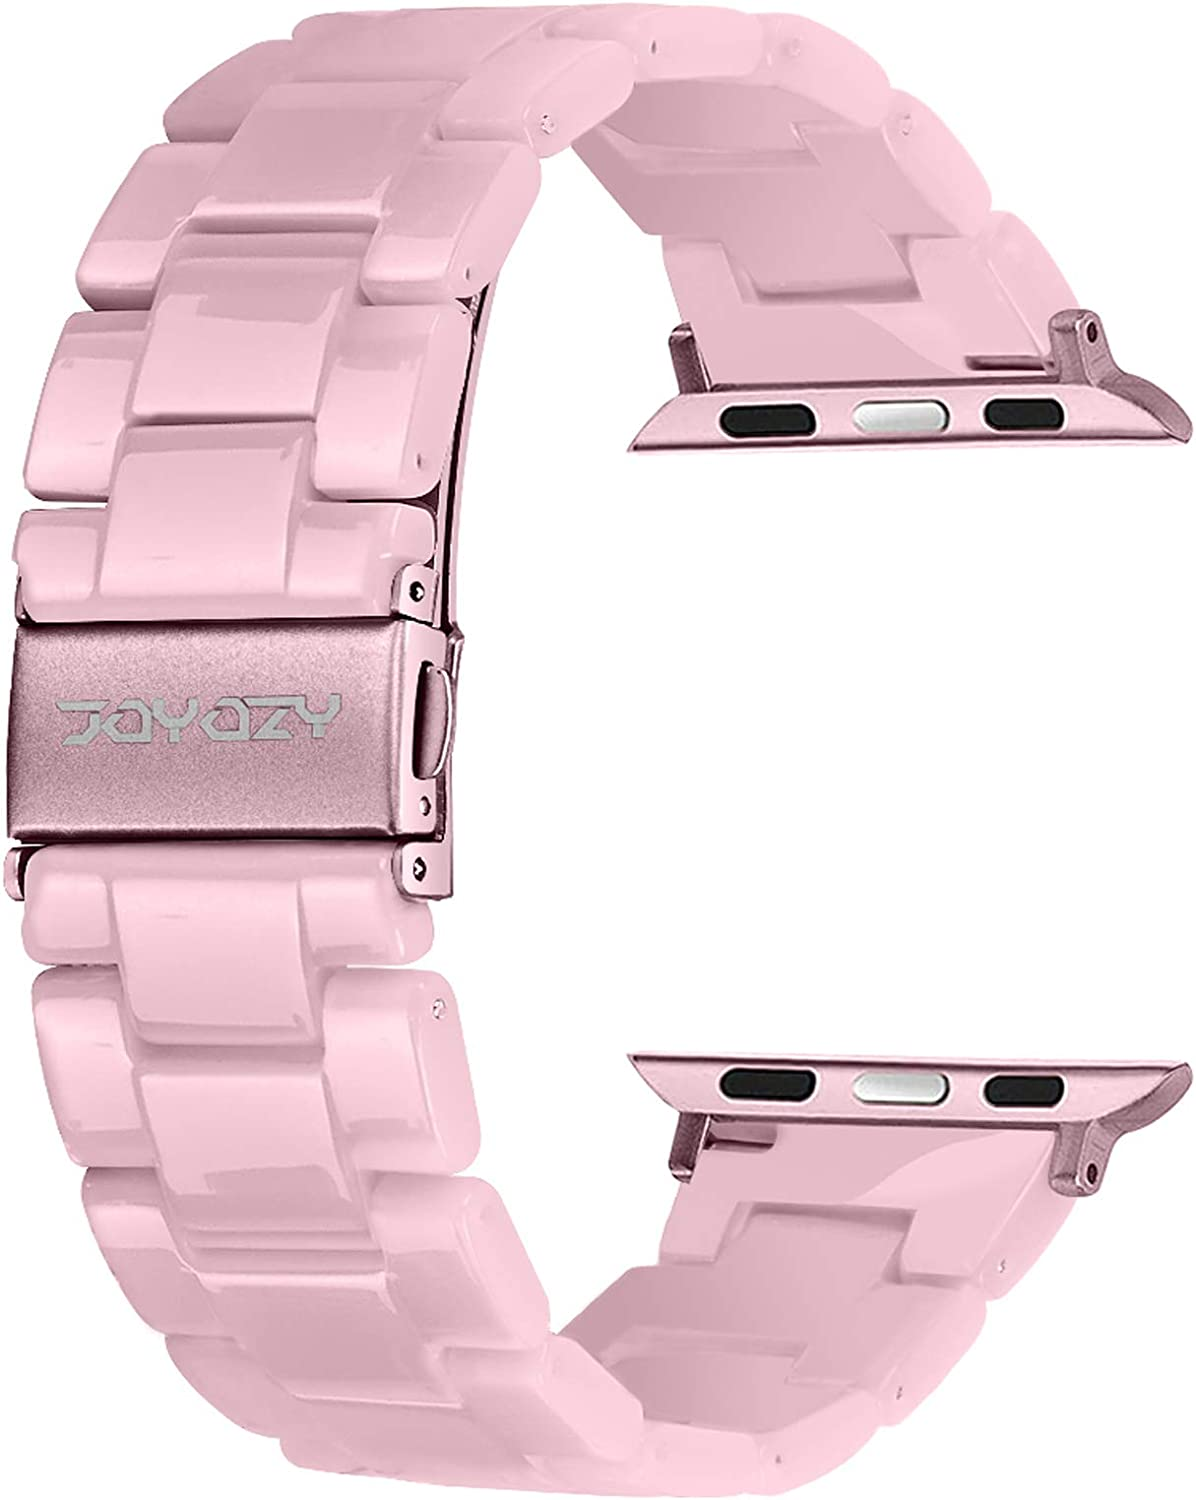 Joyozy Compatible with Apple Watch Bands 38mm 40mm 42mm 44mm, Resin Wristbands Replacement for iWatch SE& Series 6/5/4/3/2/1 for Women Men Gift Fashion Bracelet-(42mm/44mm, Pink-tone)